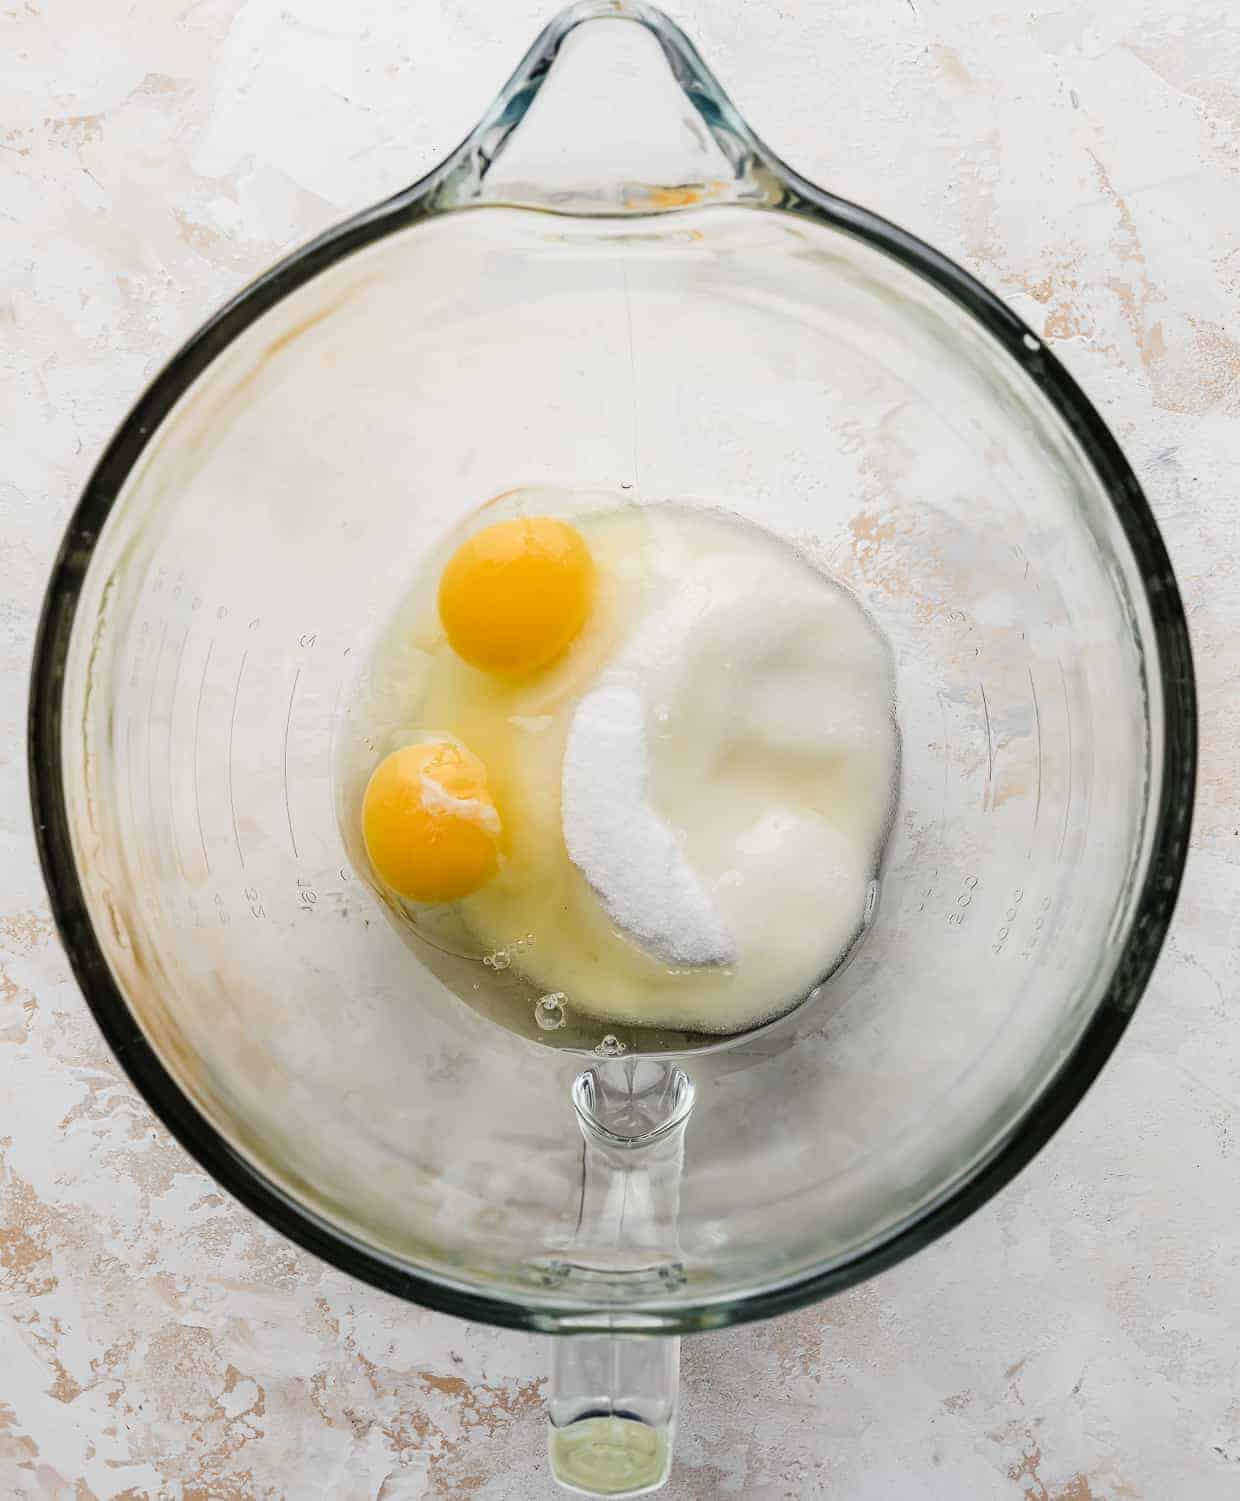 Sugar, eggs, and oil in a glass stand mixer bowl.